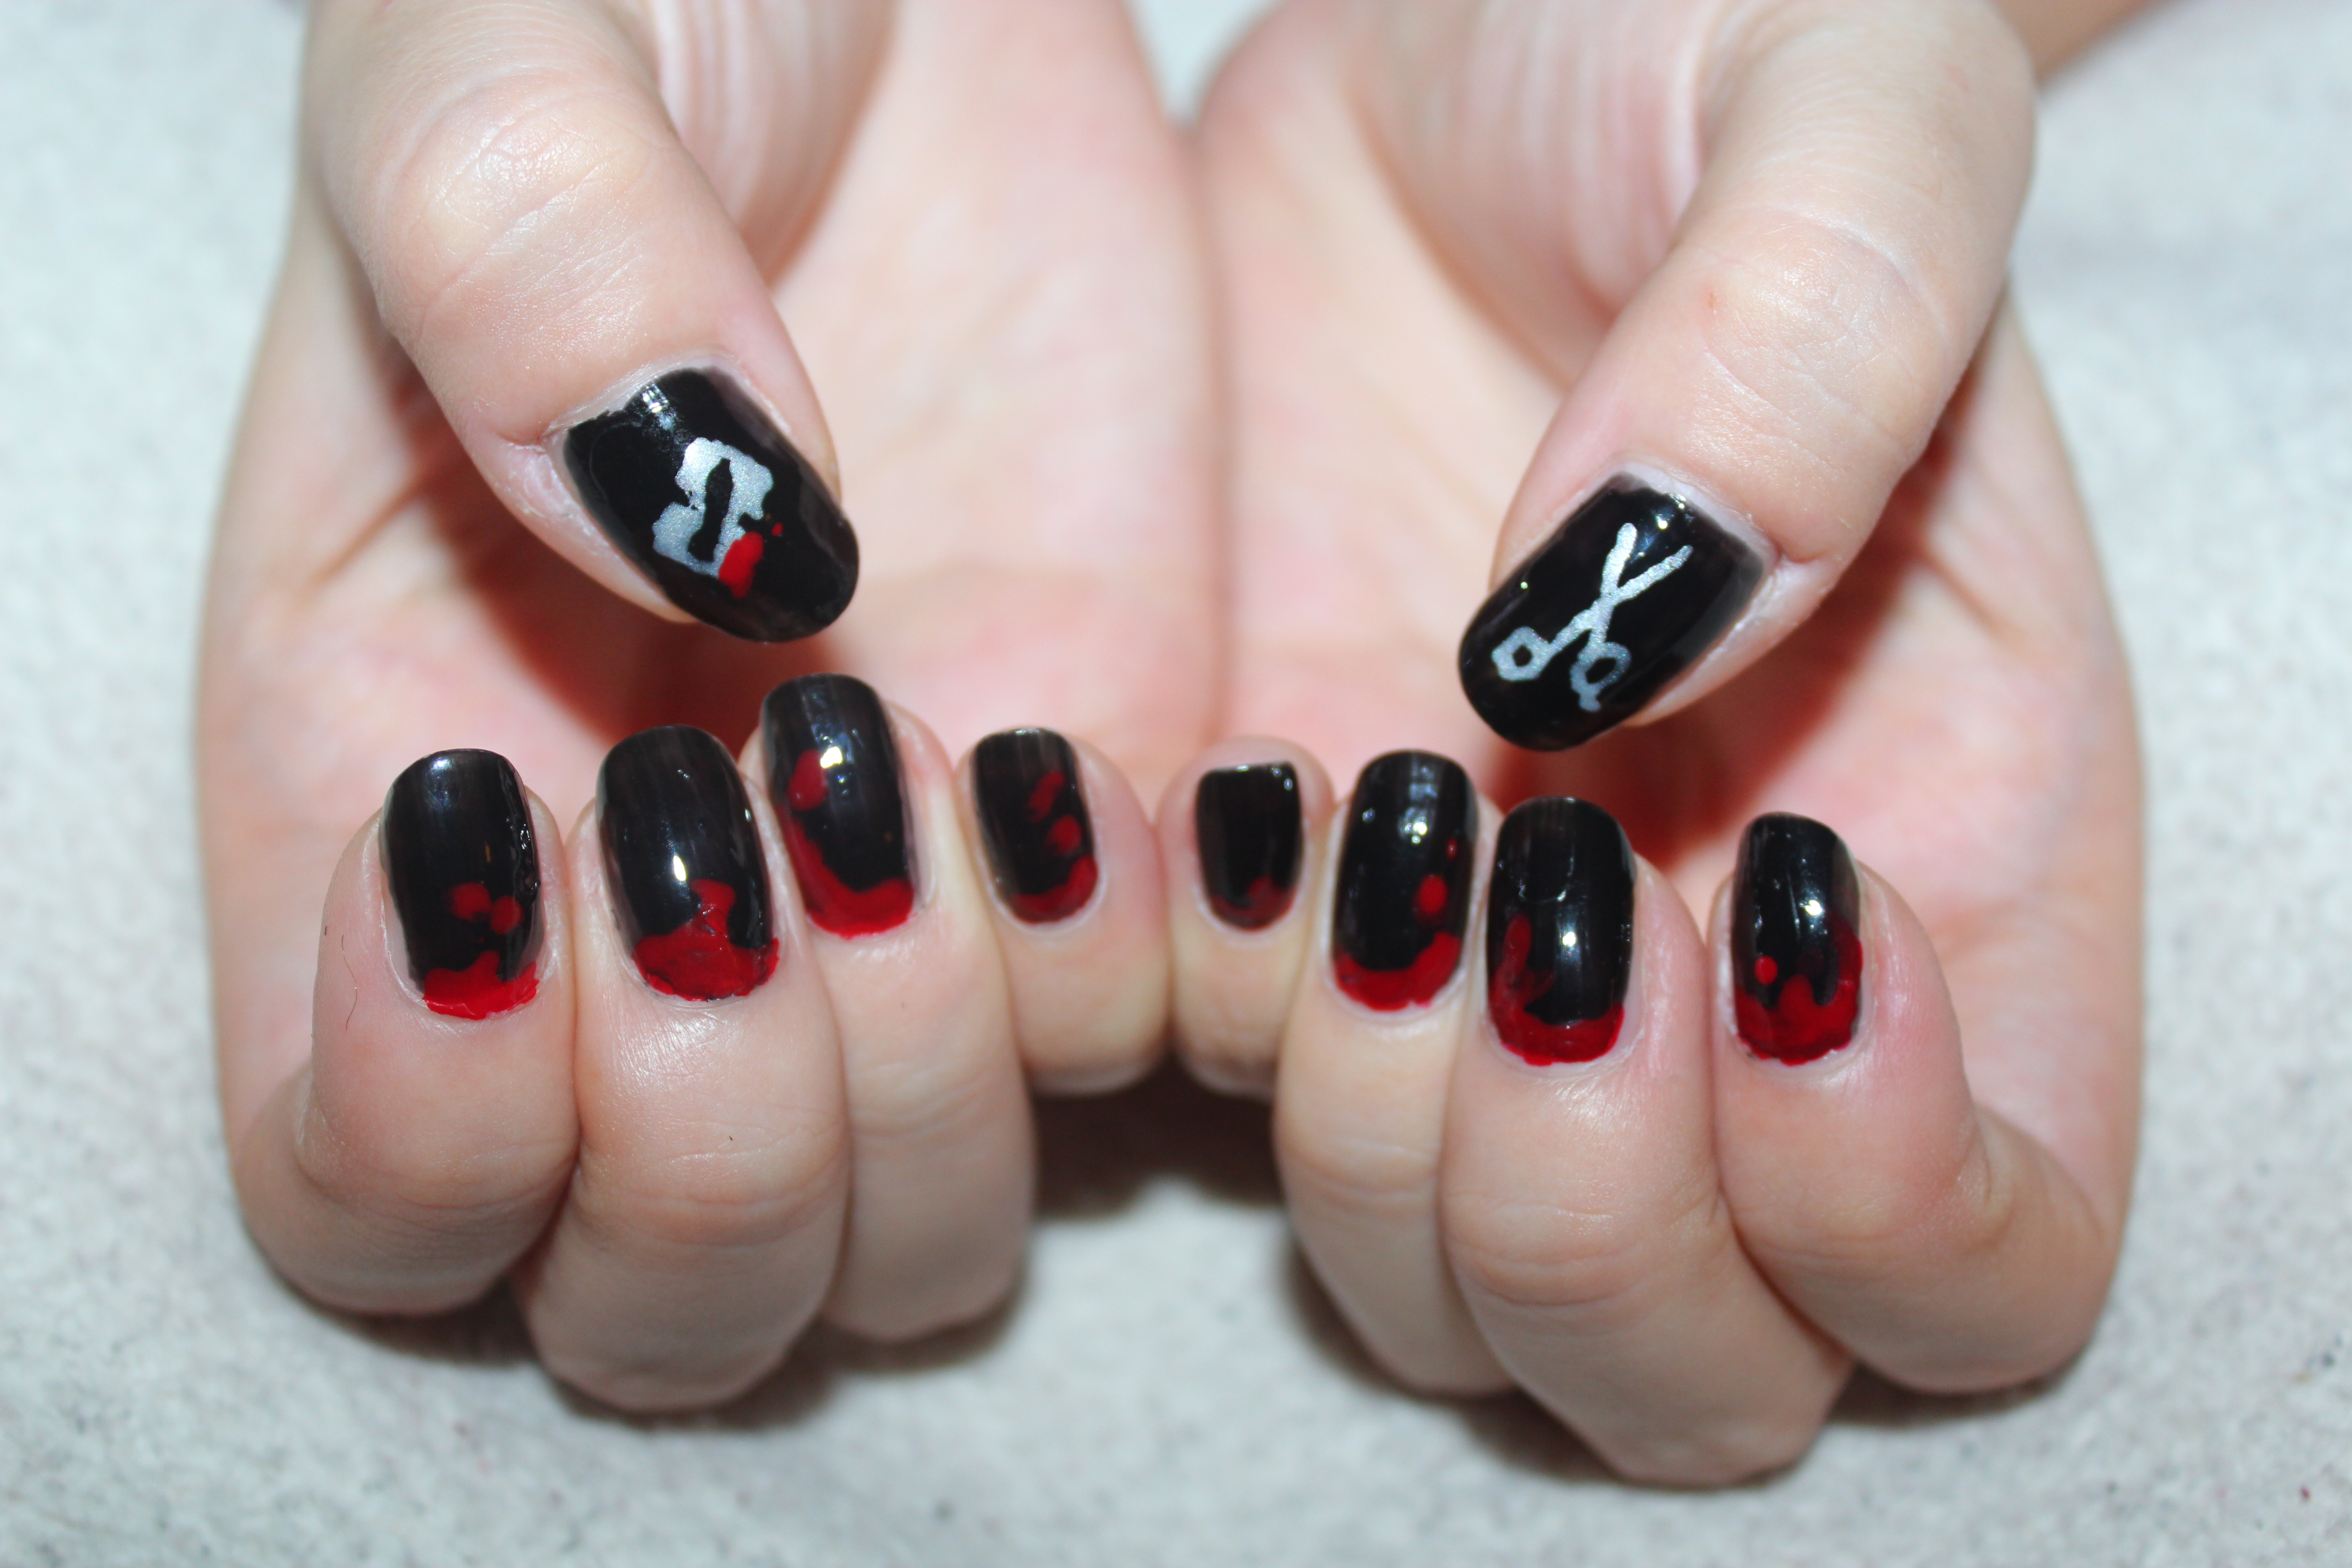 Sweeney Todd nails 2